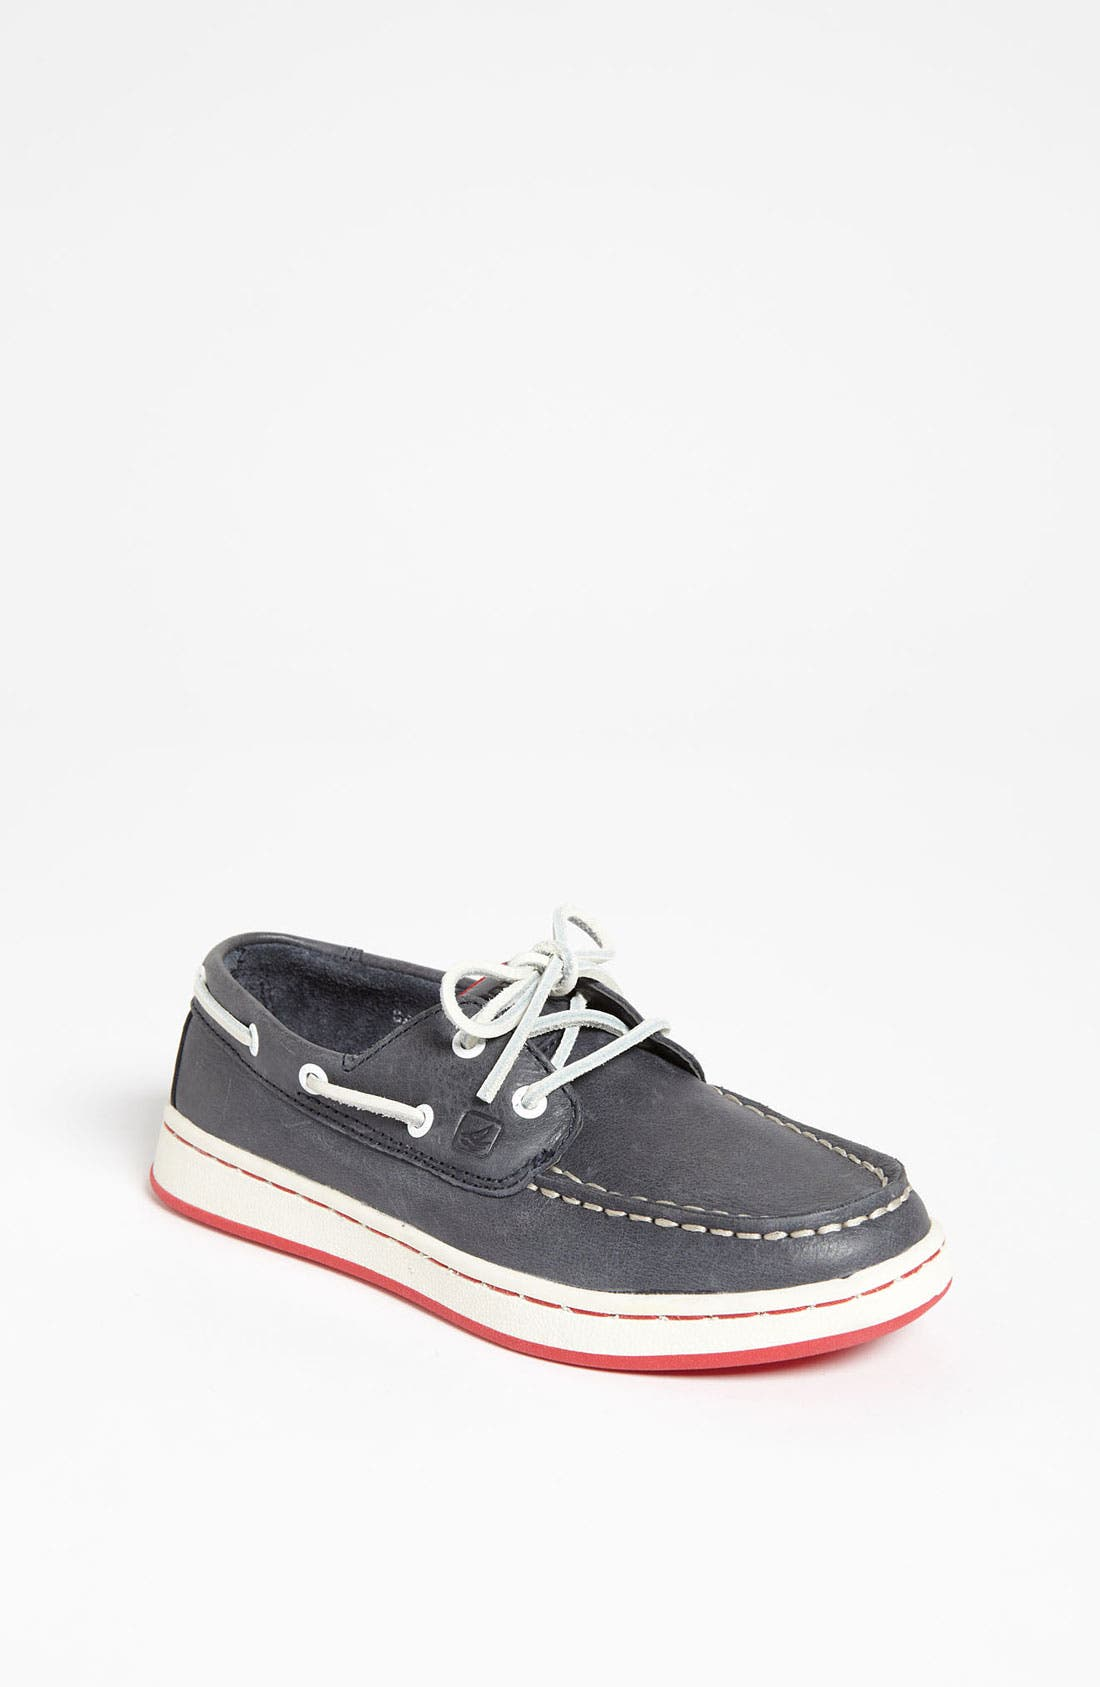 Alternate Image 1 Selected - Sperry Top-Sider® 'Cupsole' Boat Shoe (Toddler, Little Kid & Big Kid)